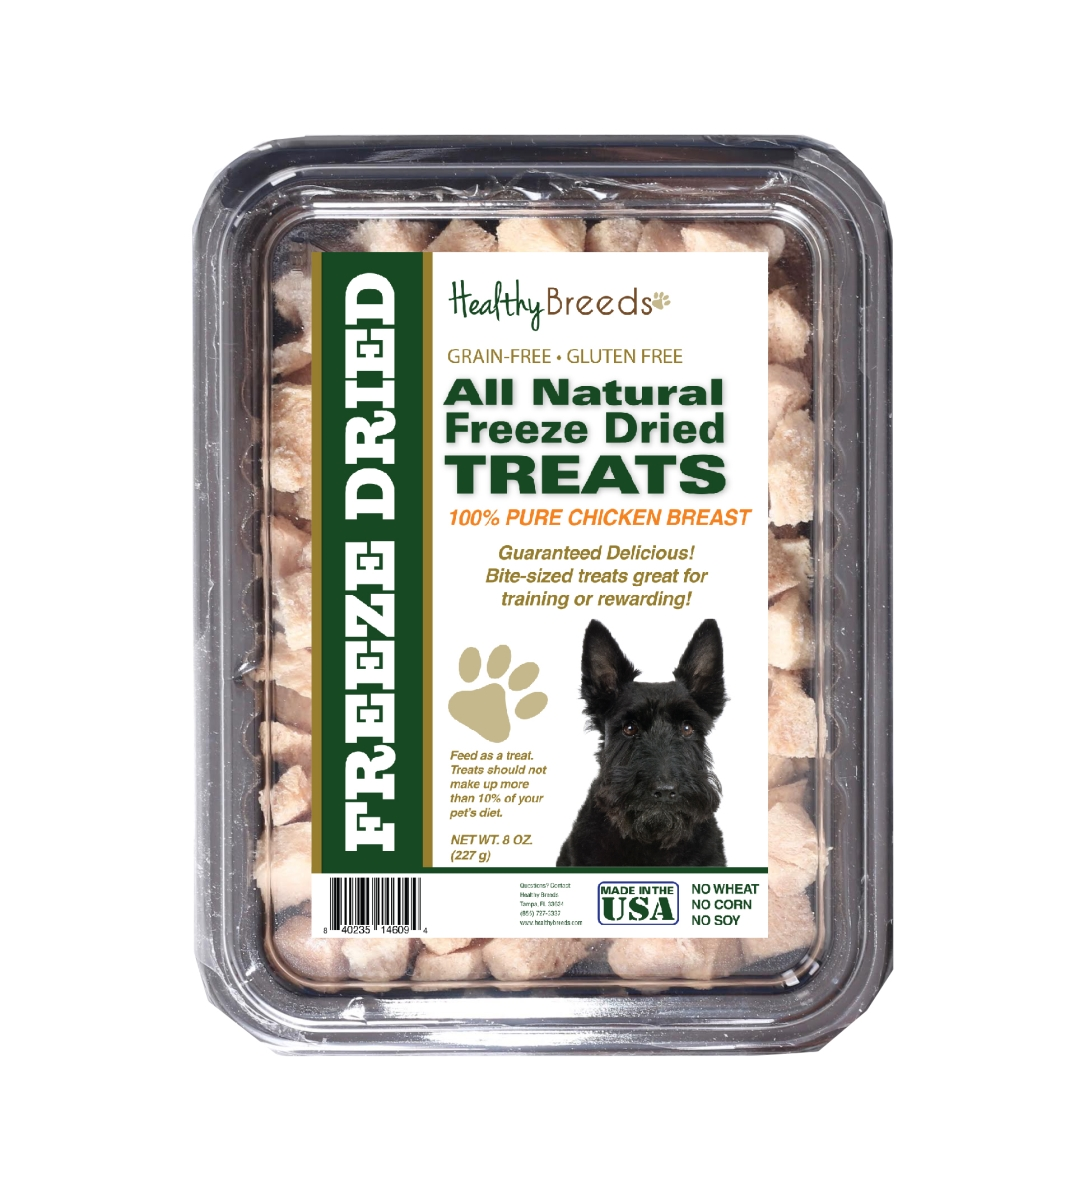 Healthy Breeds 840235146094 8 oz Scottish Terrier All Natural Freeze Dried Treats Chicken Breast